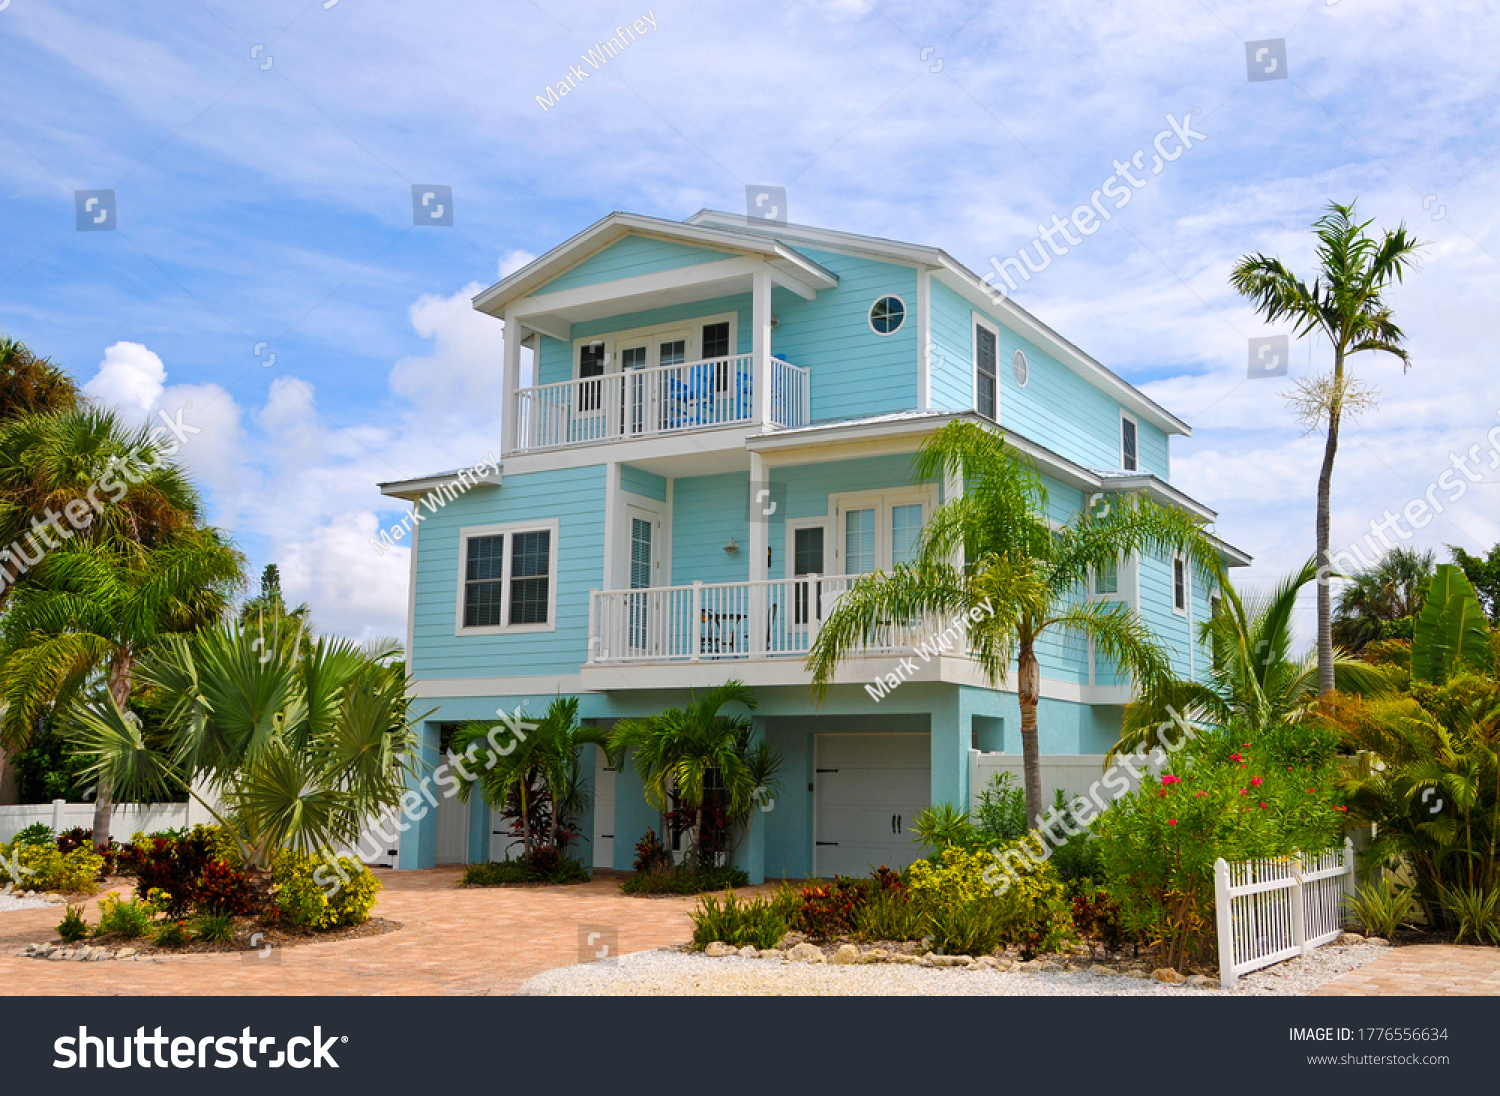 stock-photo-a-beautiful-florida-house-ne